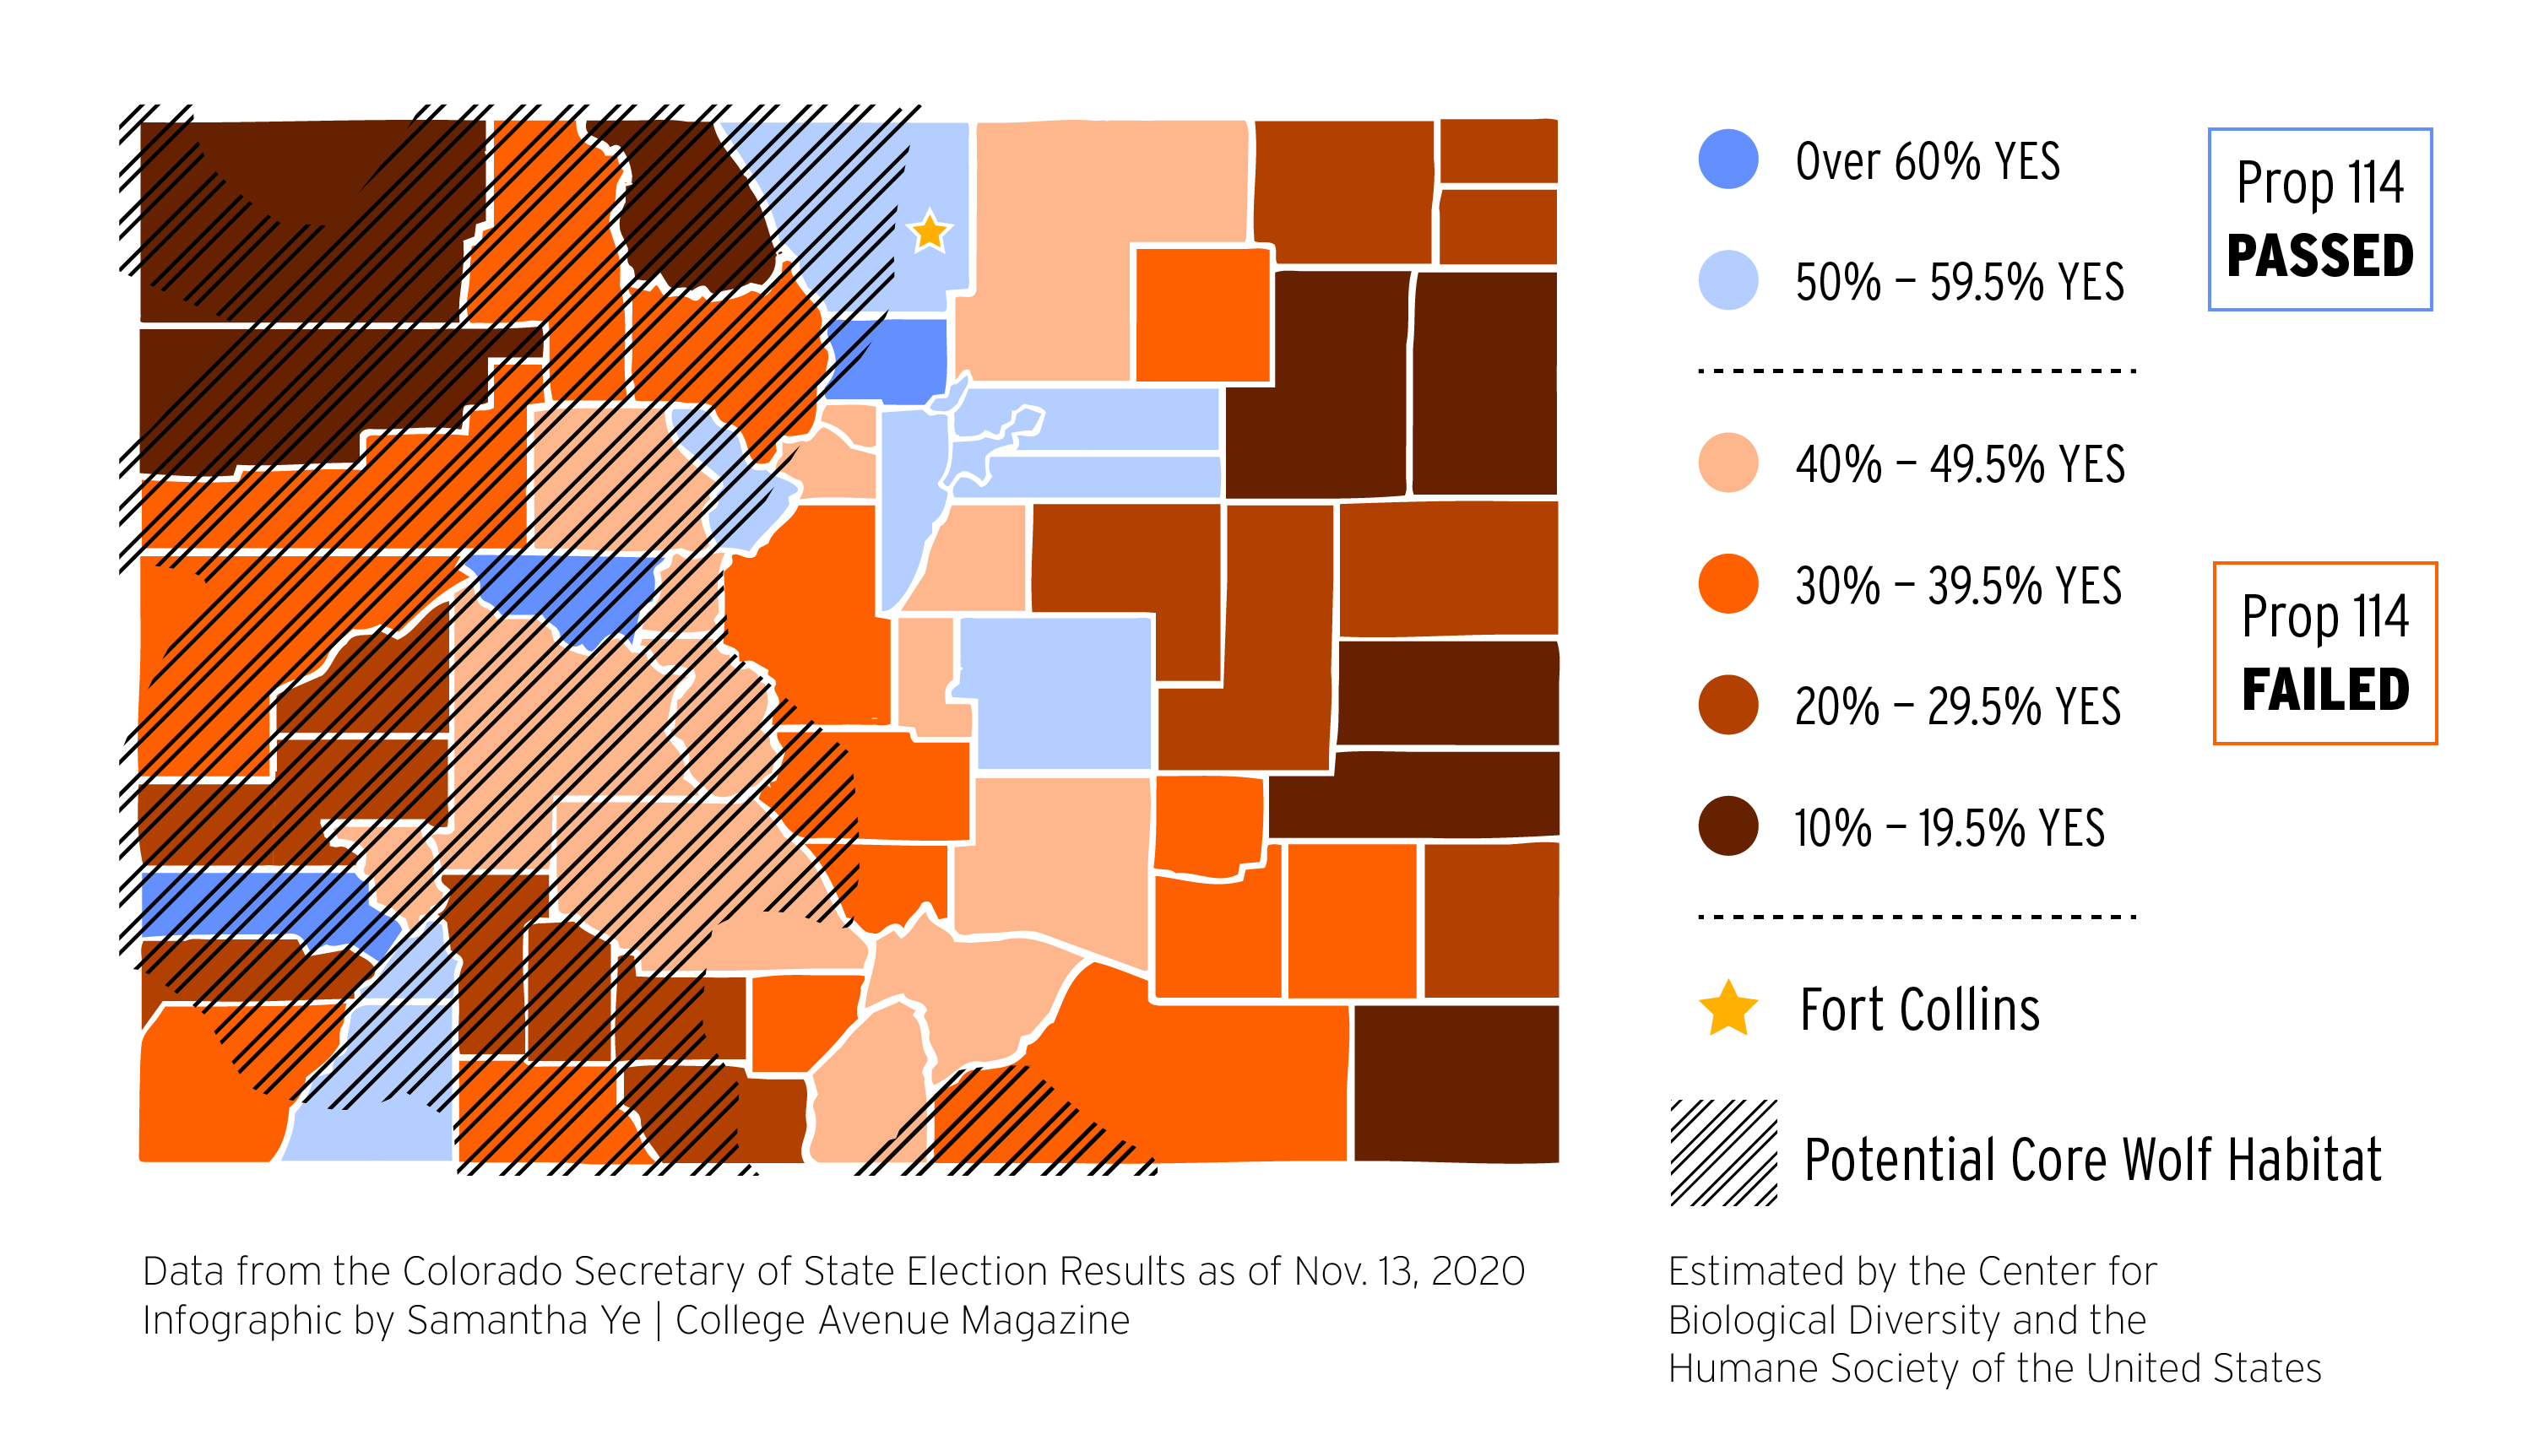 Map of the potential core wolf habitat overlaid on the Colorado county heat map of how they voted on Prop 114